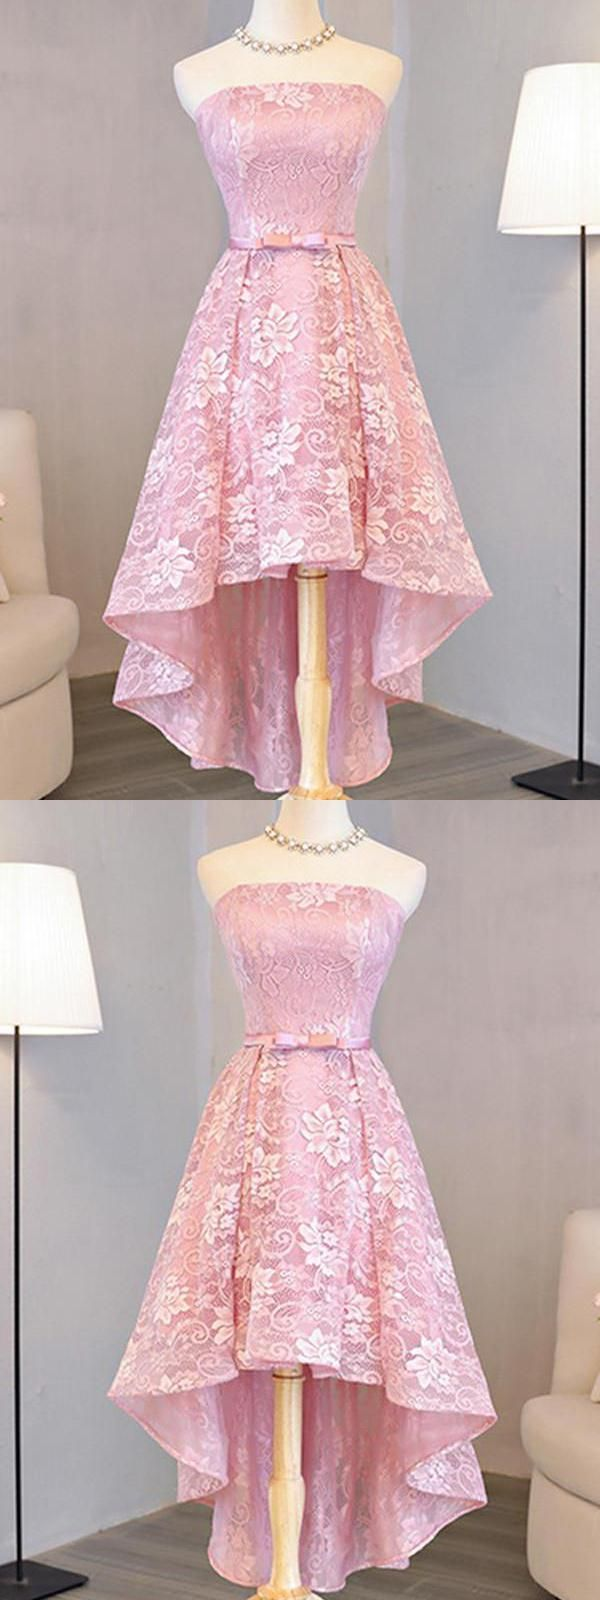 Pink homecoming dresses short party dresses short pink homecoming